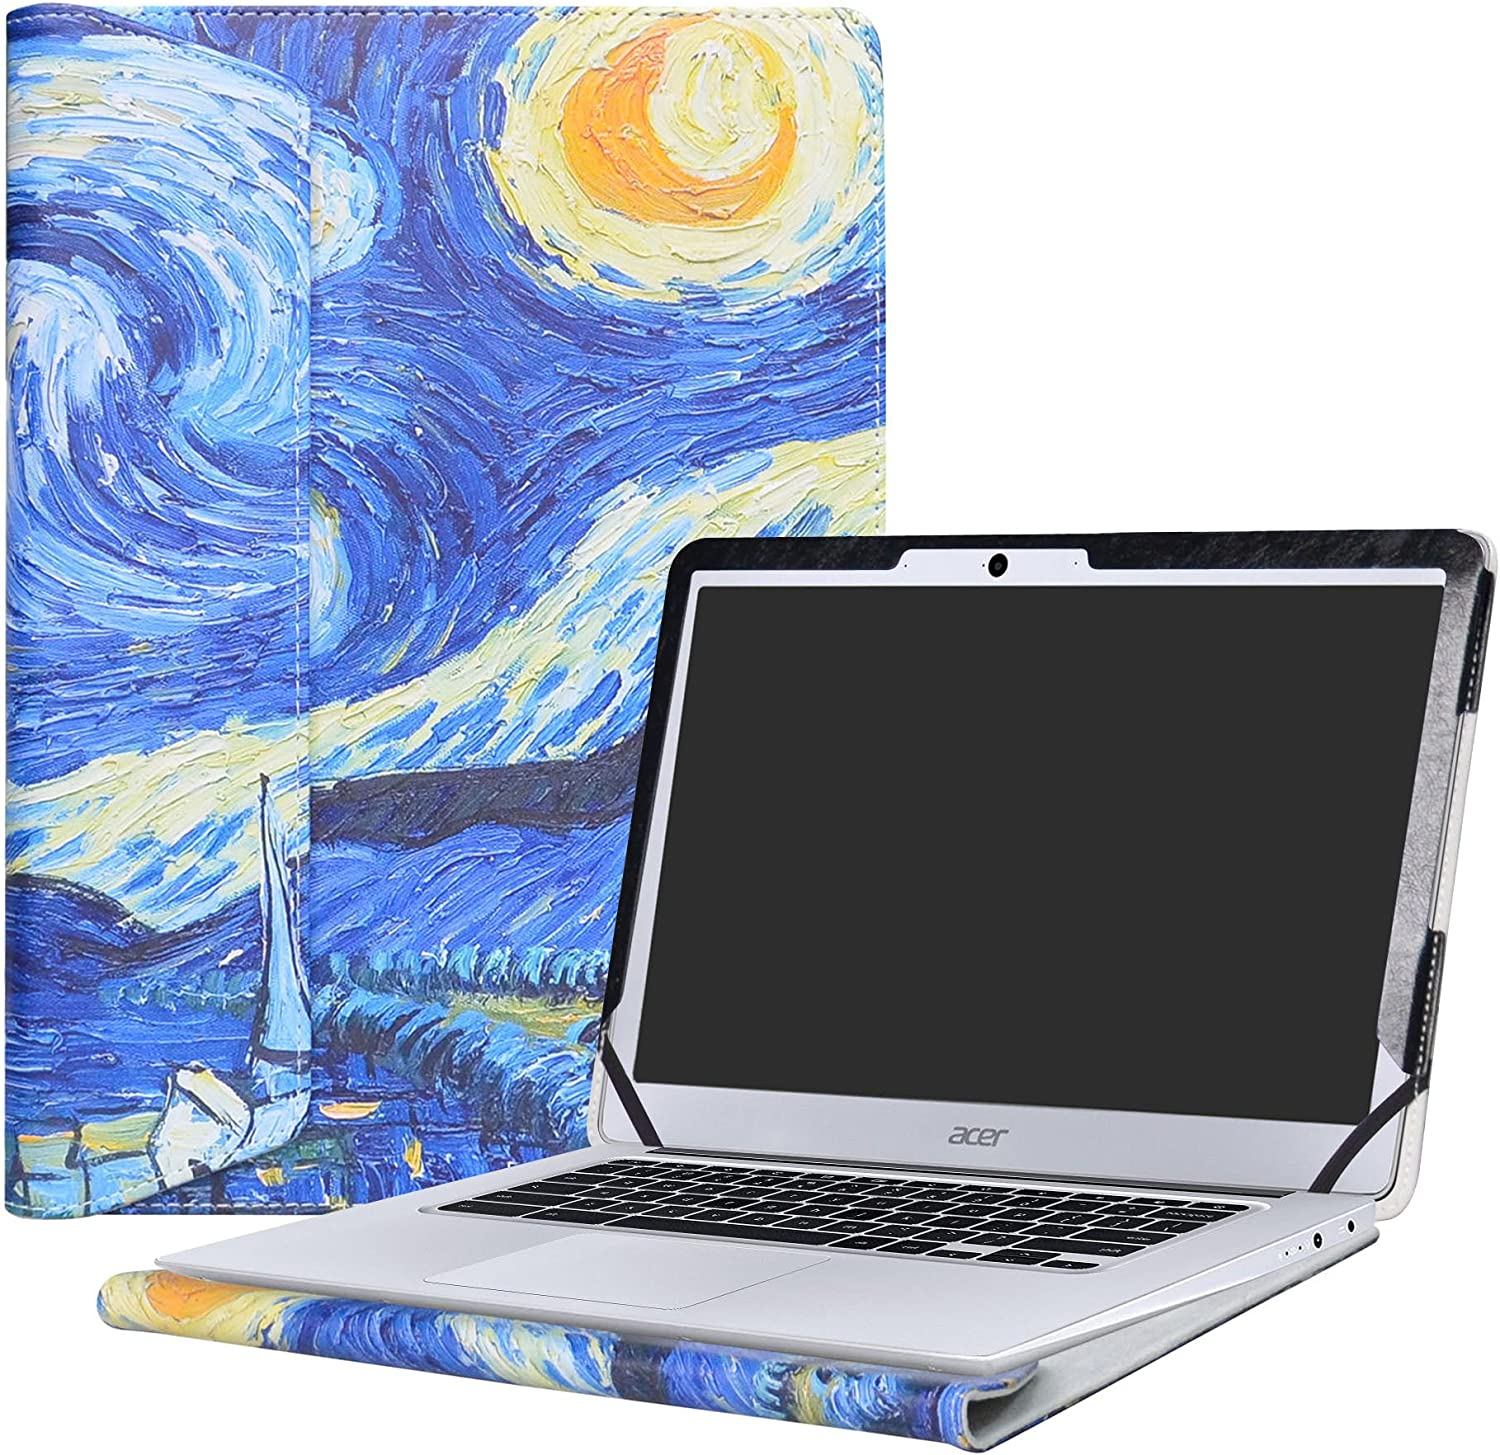 "Alapmk Protective Case Cover for 14"" Acer Chromebook 14 CB3-431 Series Laptop(Not fit ACER CHROMEBOOK 14 for Work CP5-471 Series),Starry Night"